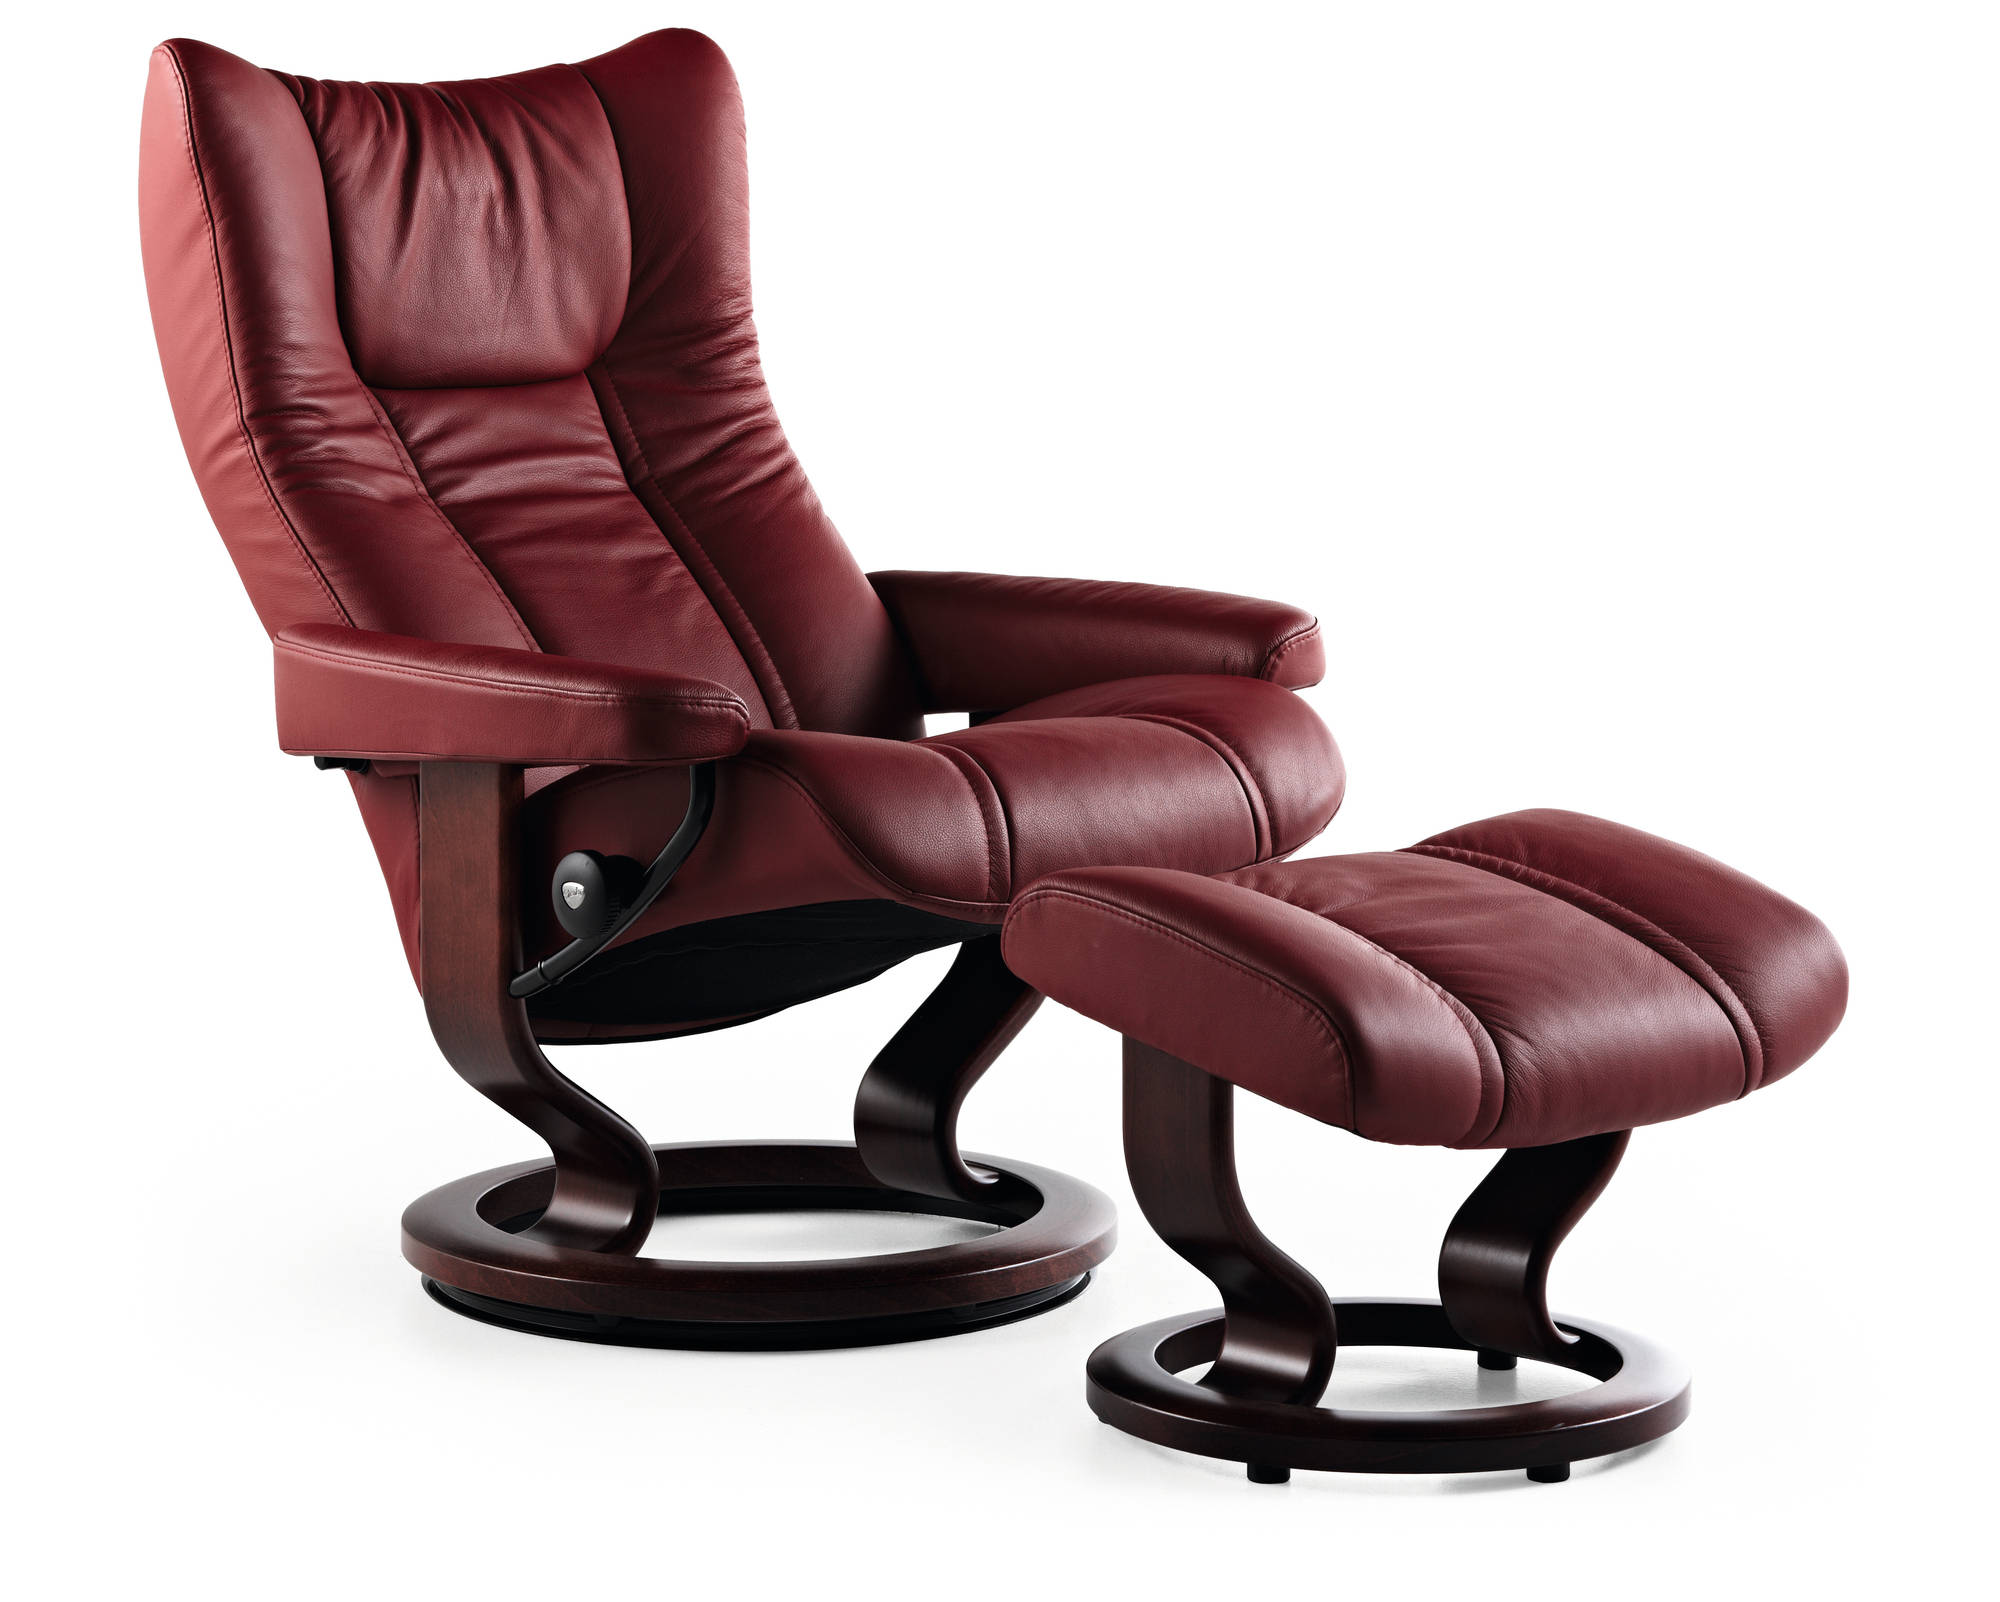 Ekornes Stressless Wing Recliner with footrest.